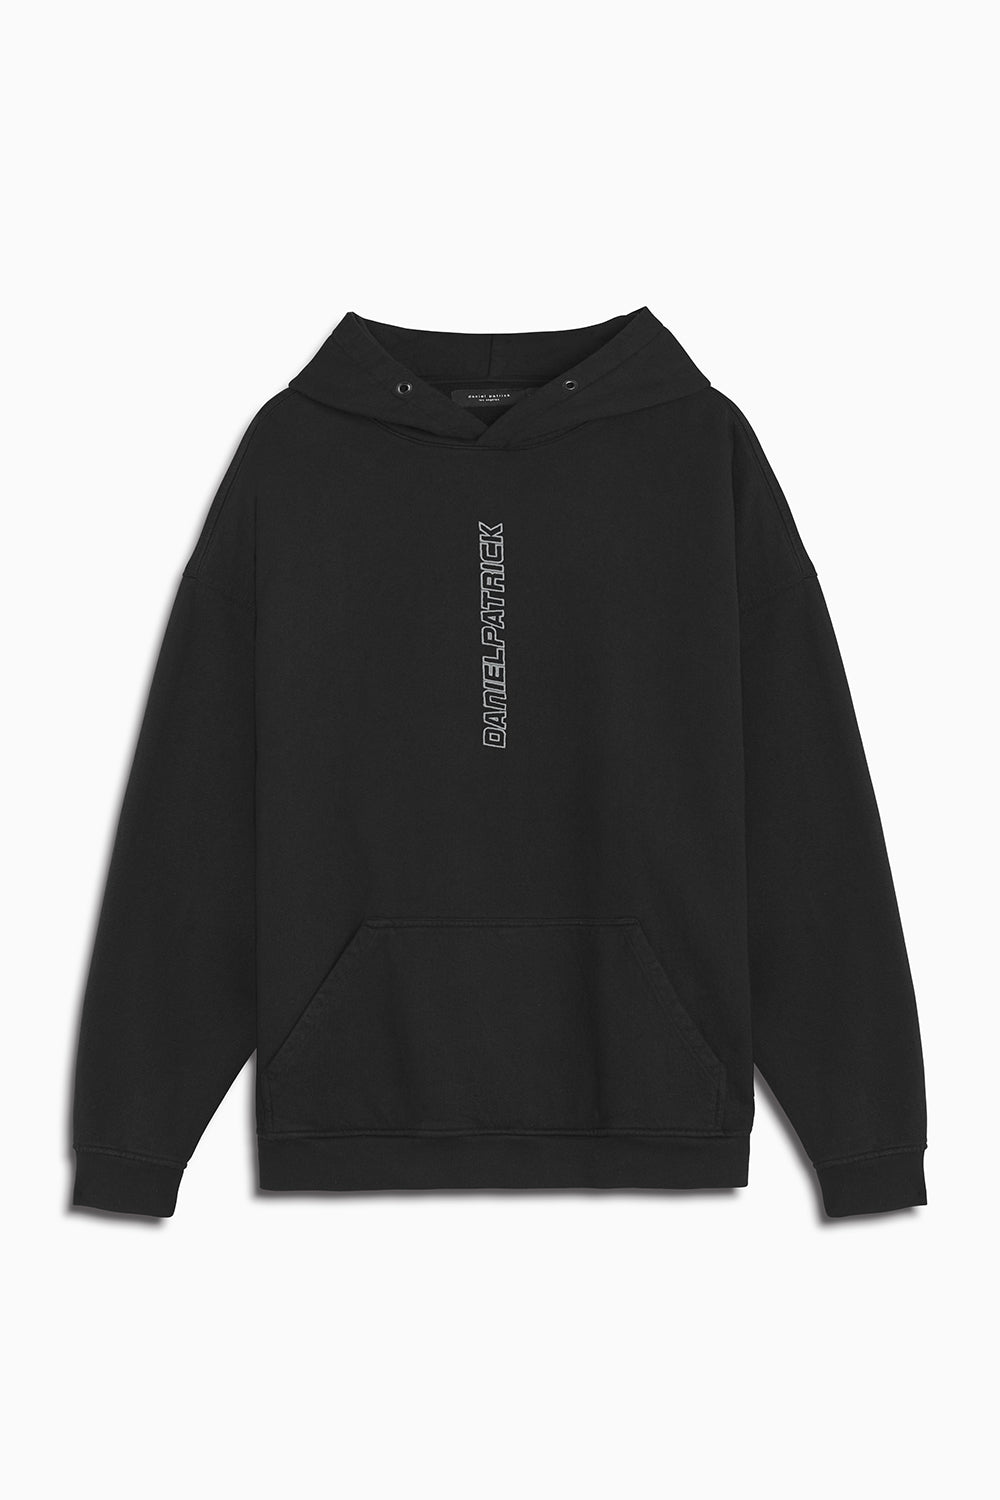 vertical logo hoodie in black/smog grey by daniel patrick